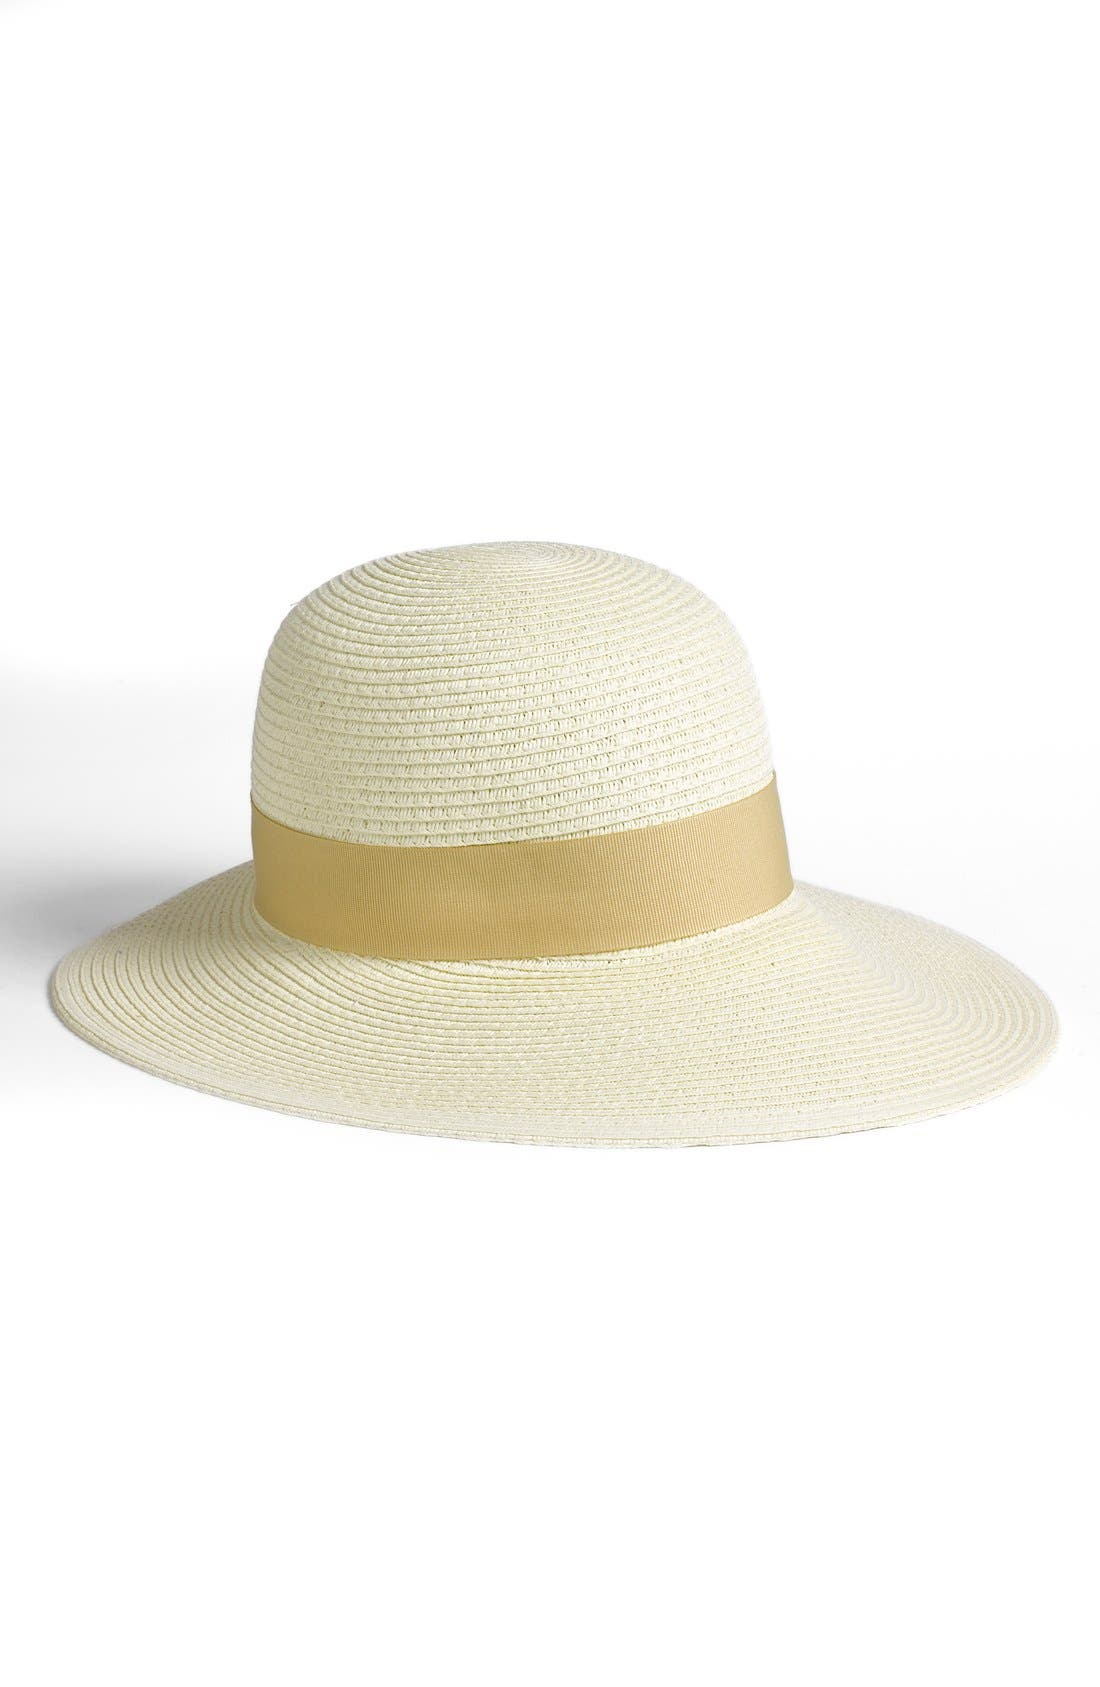 Alternate Image 1 Selected - Nordstrom Wide Brim Sun Hat